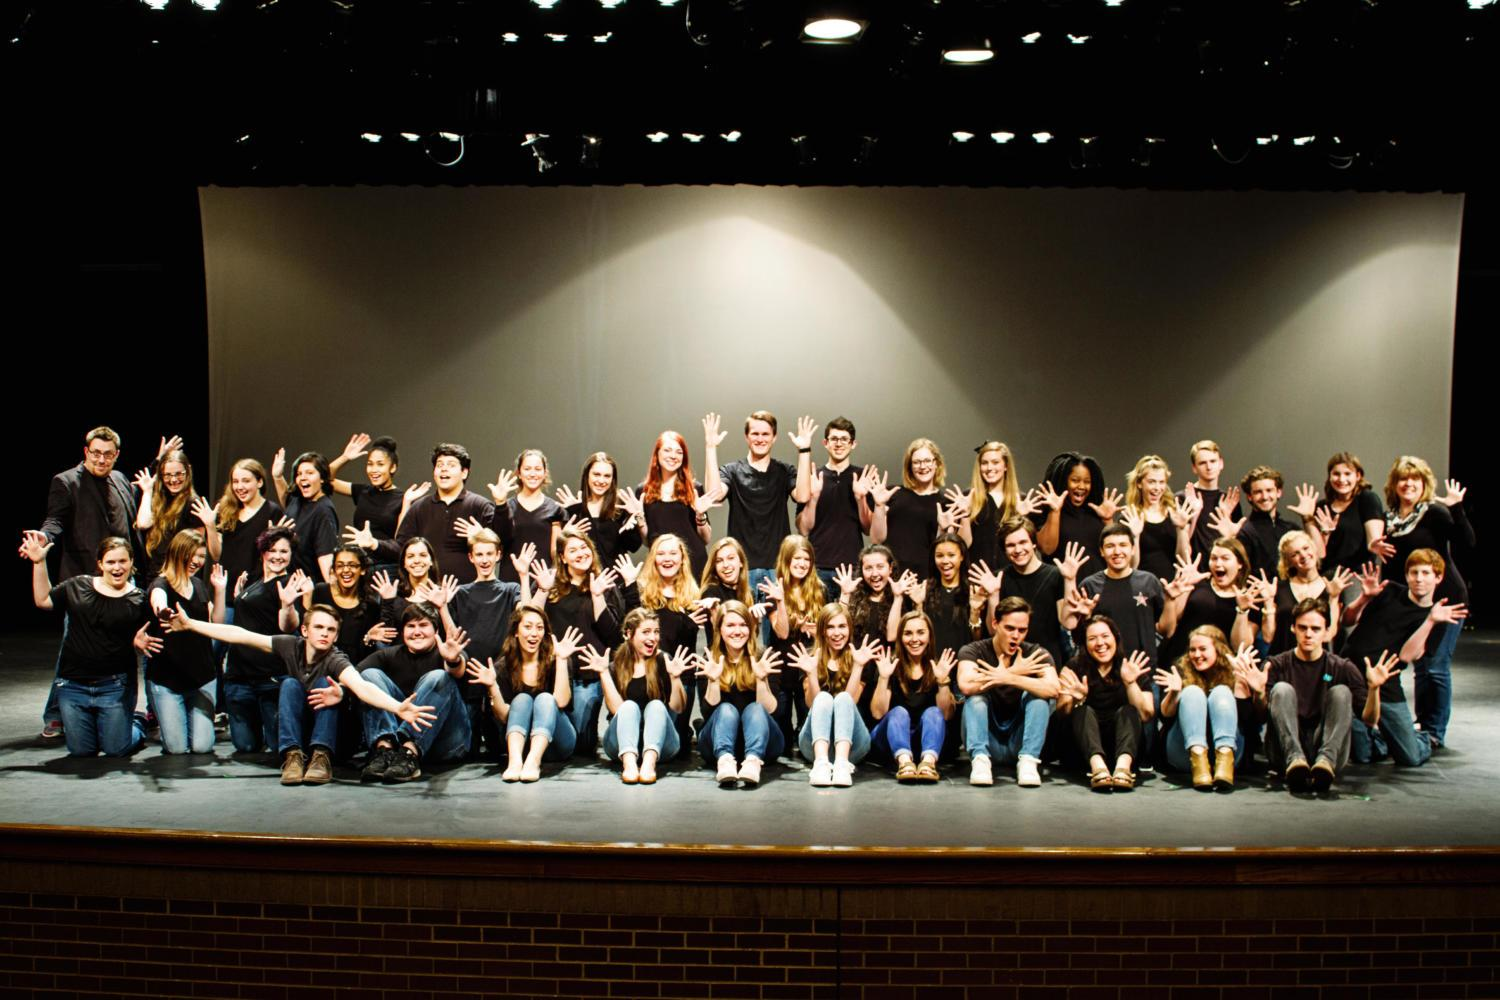 Coppell+High+School+drama+club+poses+for+a+club+picture+in+the+Black+Box+Theatre.+Each+year+the+club+hosts+a+Dinner+and+a+Movie+event%2C+which+features+a+movie+with+food+to+watch+the+film.+